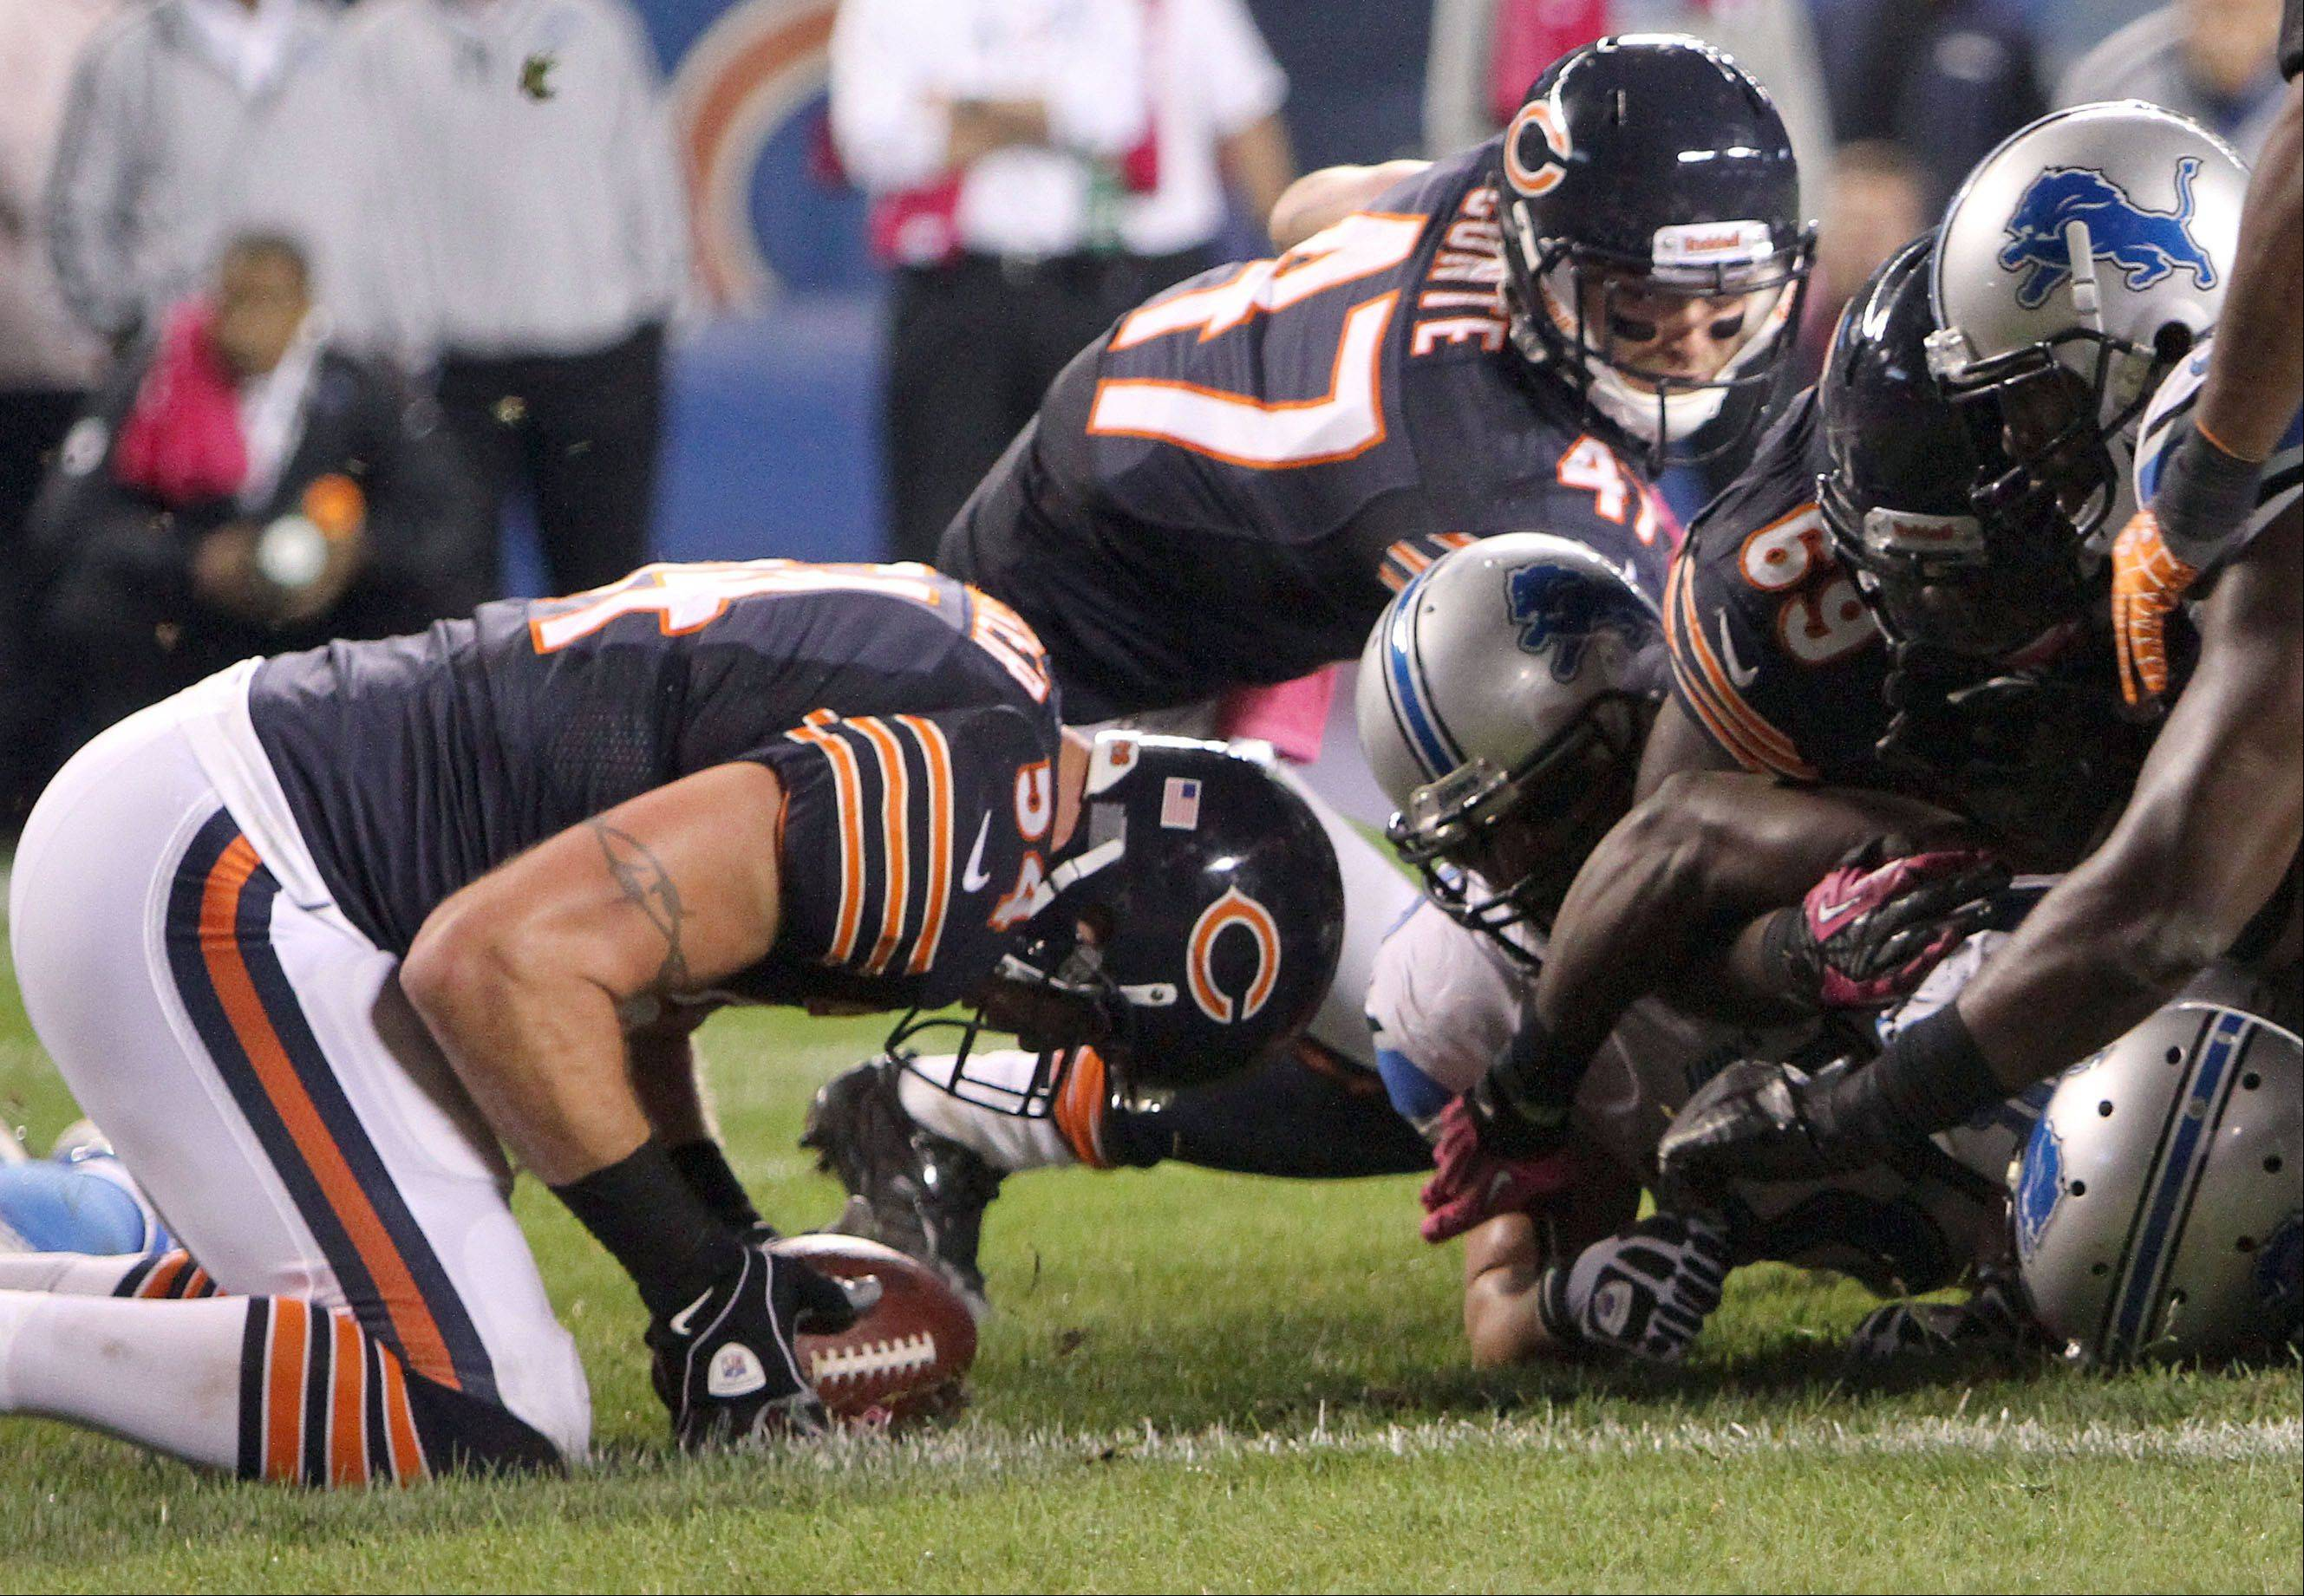 Chicago Bears middle linebacker Brian Urlacher recovers a fumble on the one-yard line Monday night, stopping a Lions drive in the third quarter in their game at Soldier Field.